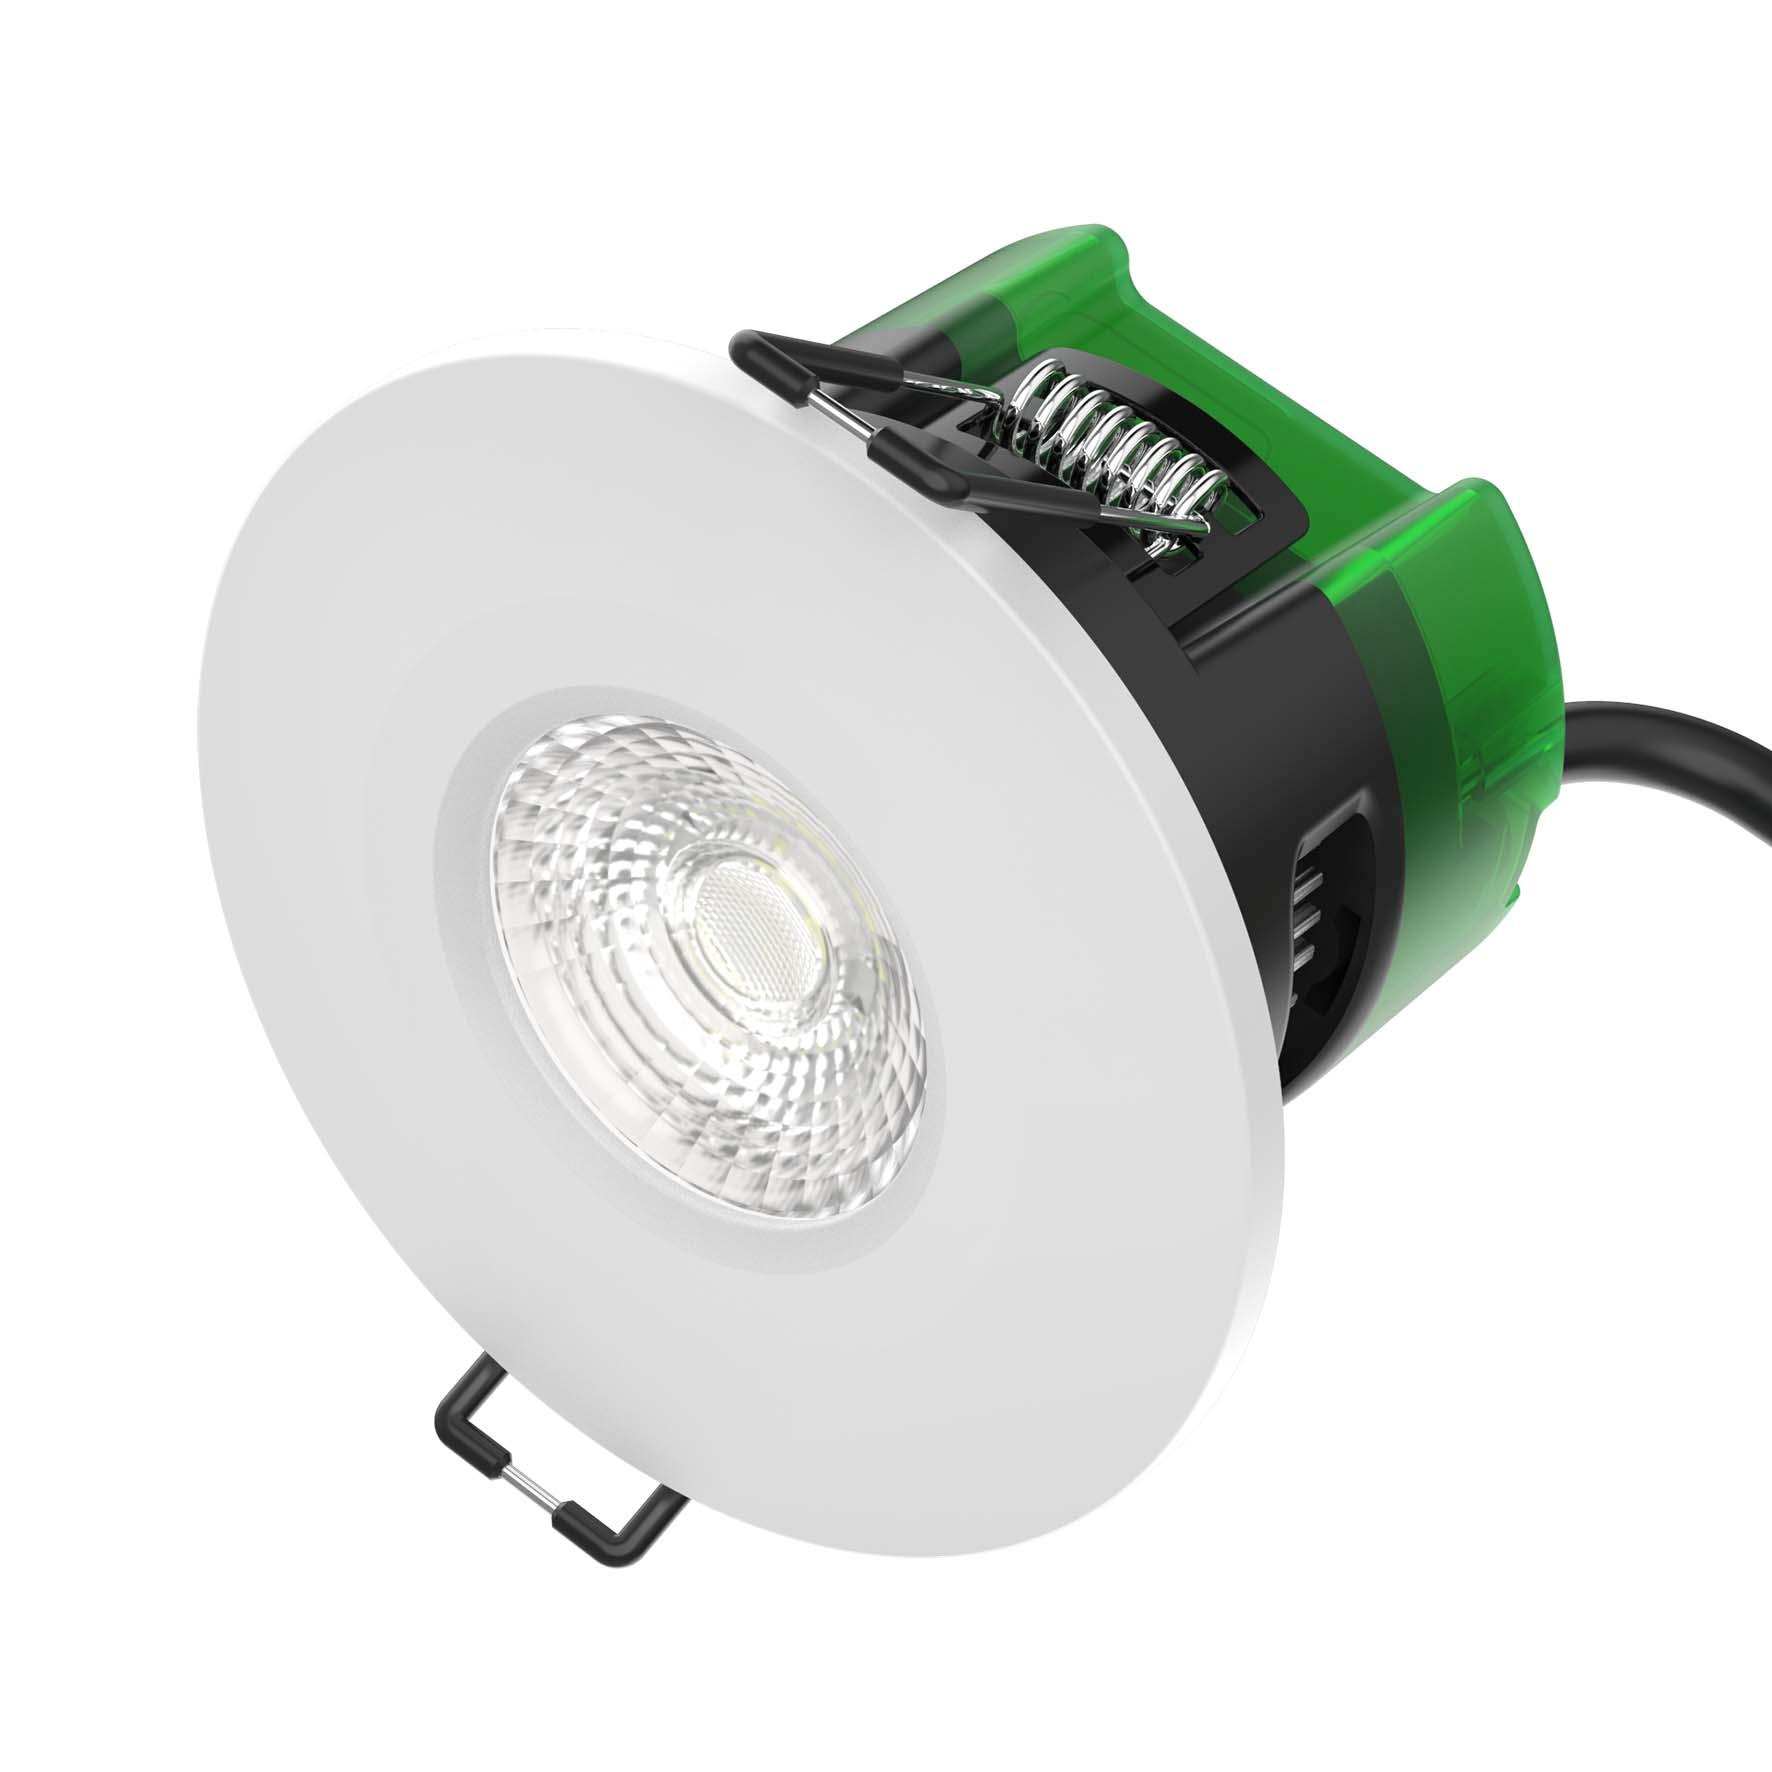 BL LED DL FIRESTAY FXD 6W IP65 840 D 35K DOWNLIGHT DIMMABLE FIXED